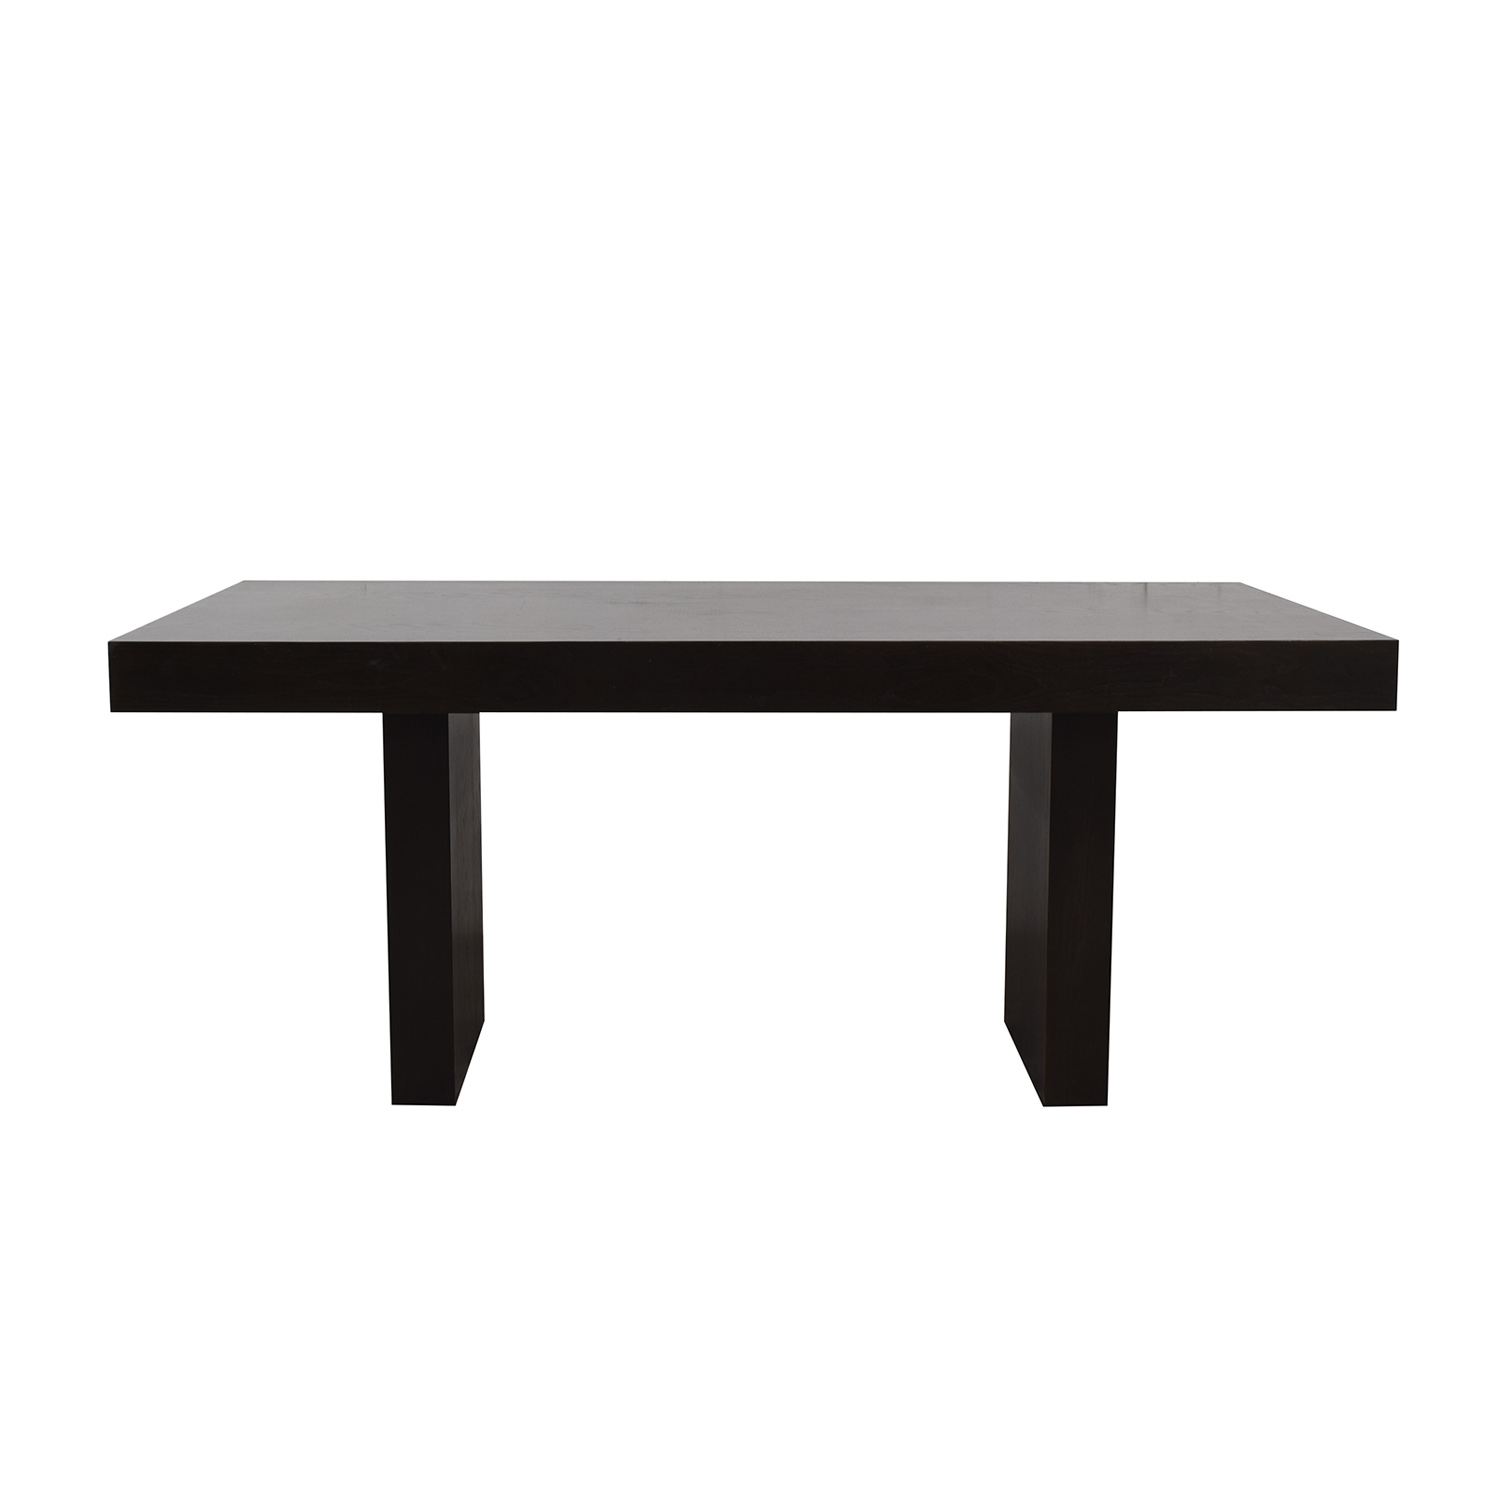 West Elm West Elm Hayden Black Dining Table